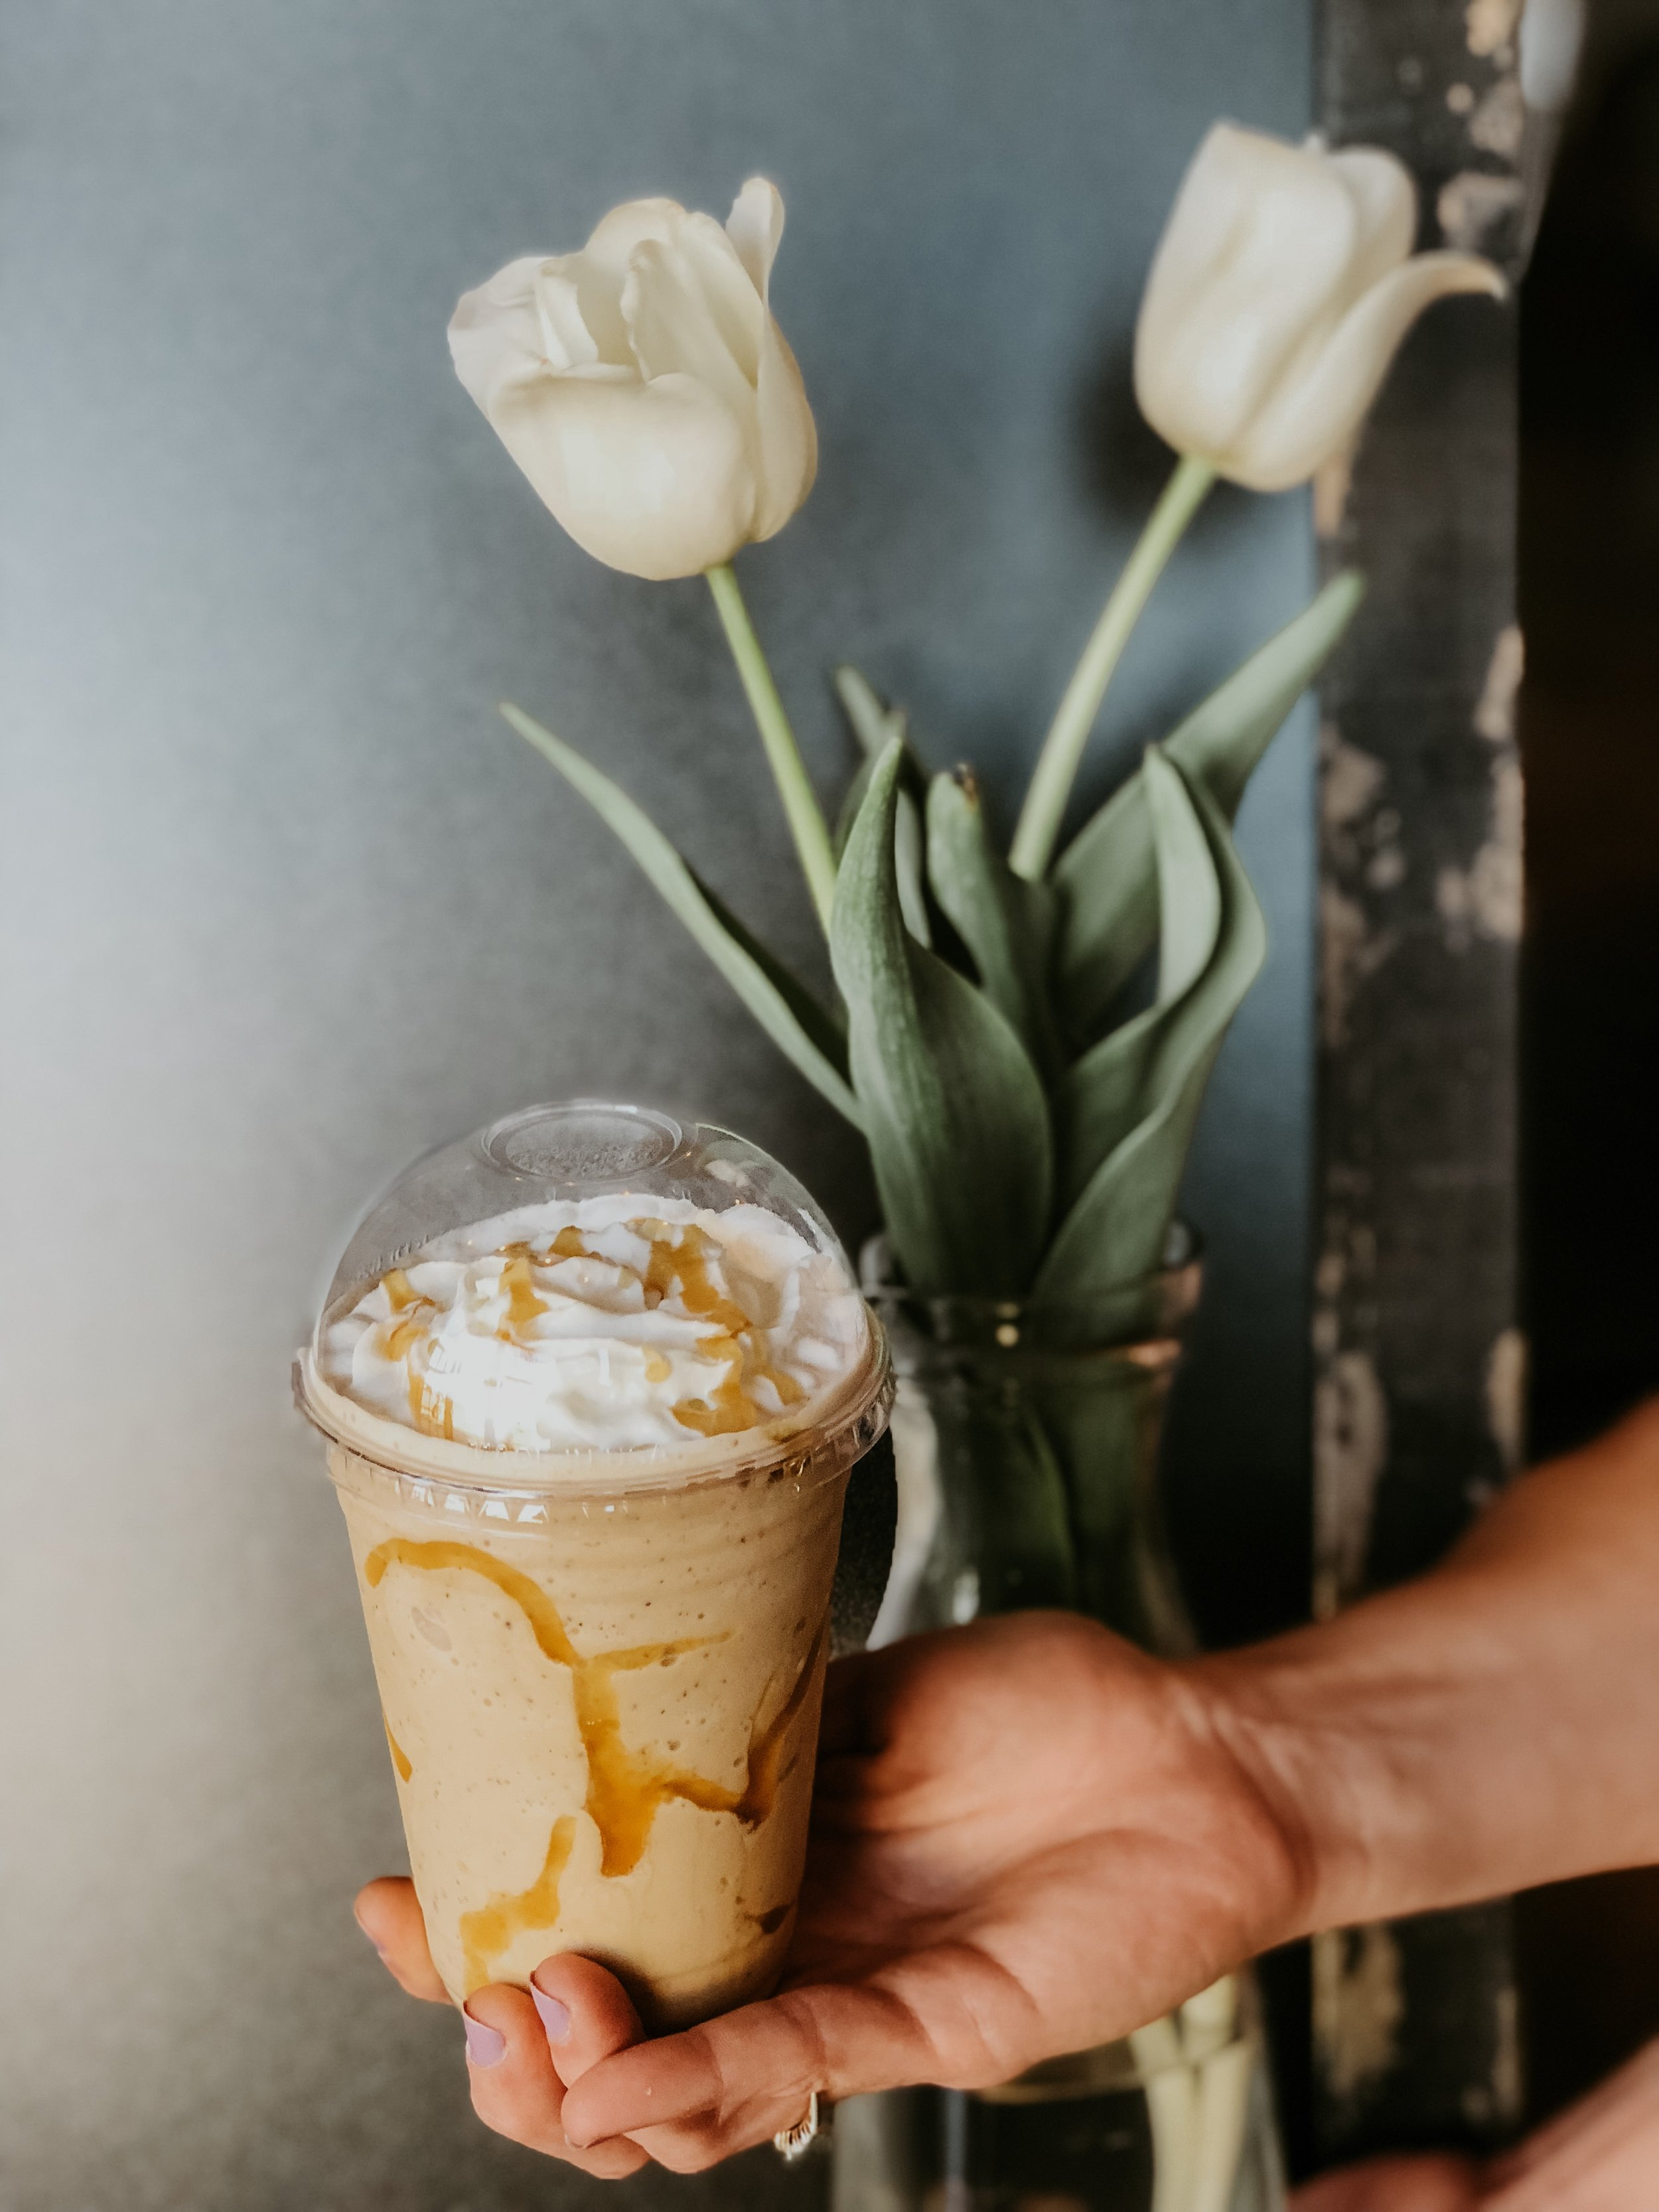 STOP IN AND GET OUR NEW OH, HONEY! FRAP  savory and REFRESHING! made with vanilla bean, lavender and of course.. honey!